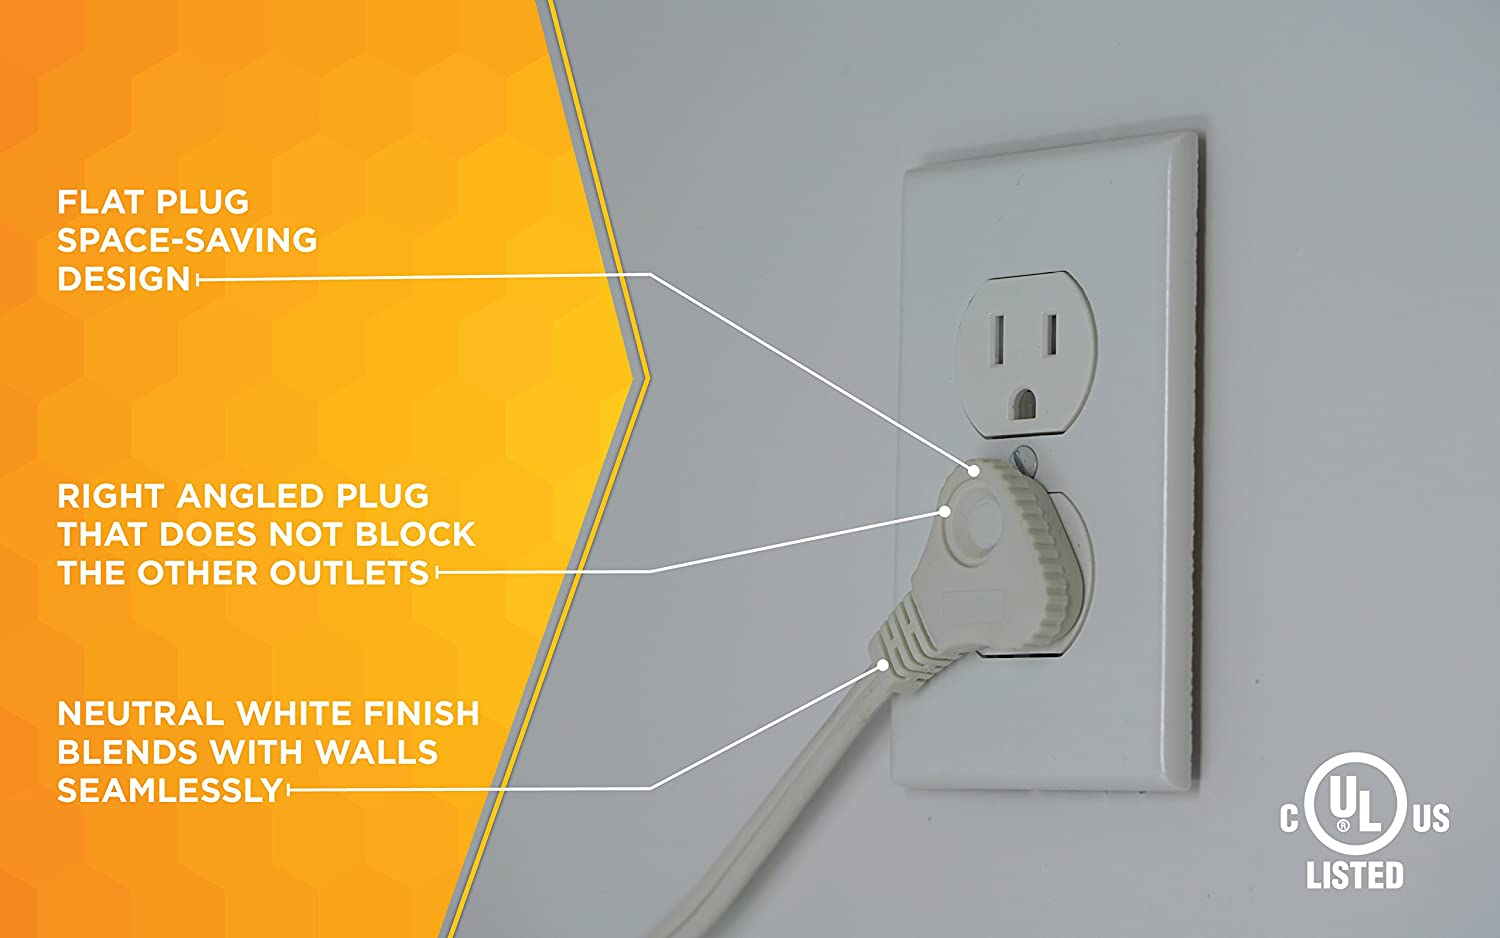 SlimLine 2236 Flat Plug Extension Cord, 2-Wire, 7-Foot, White ...